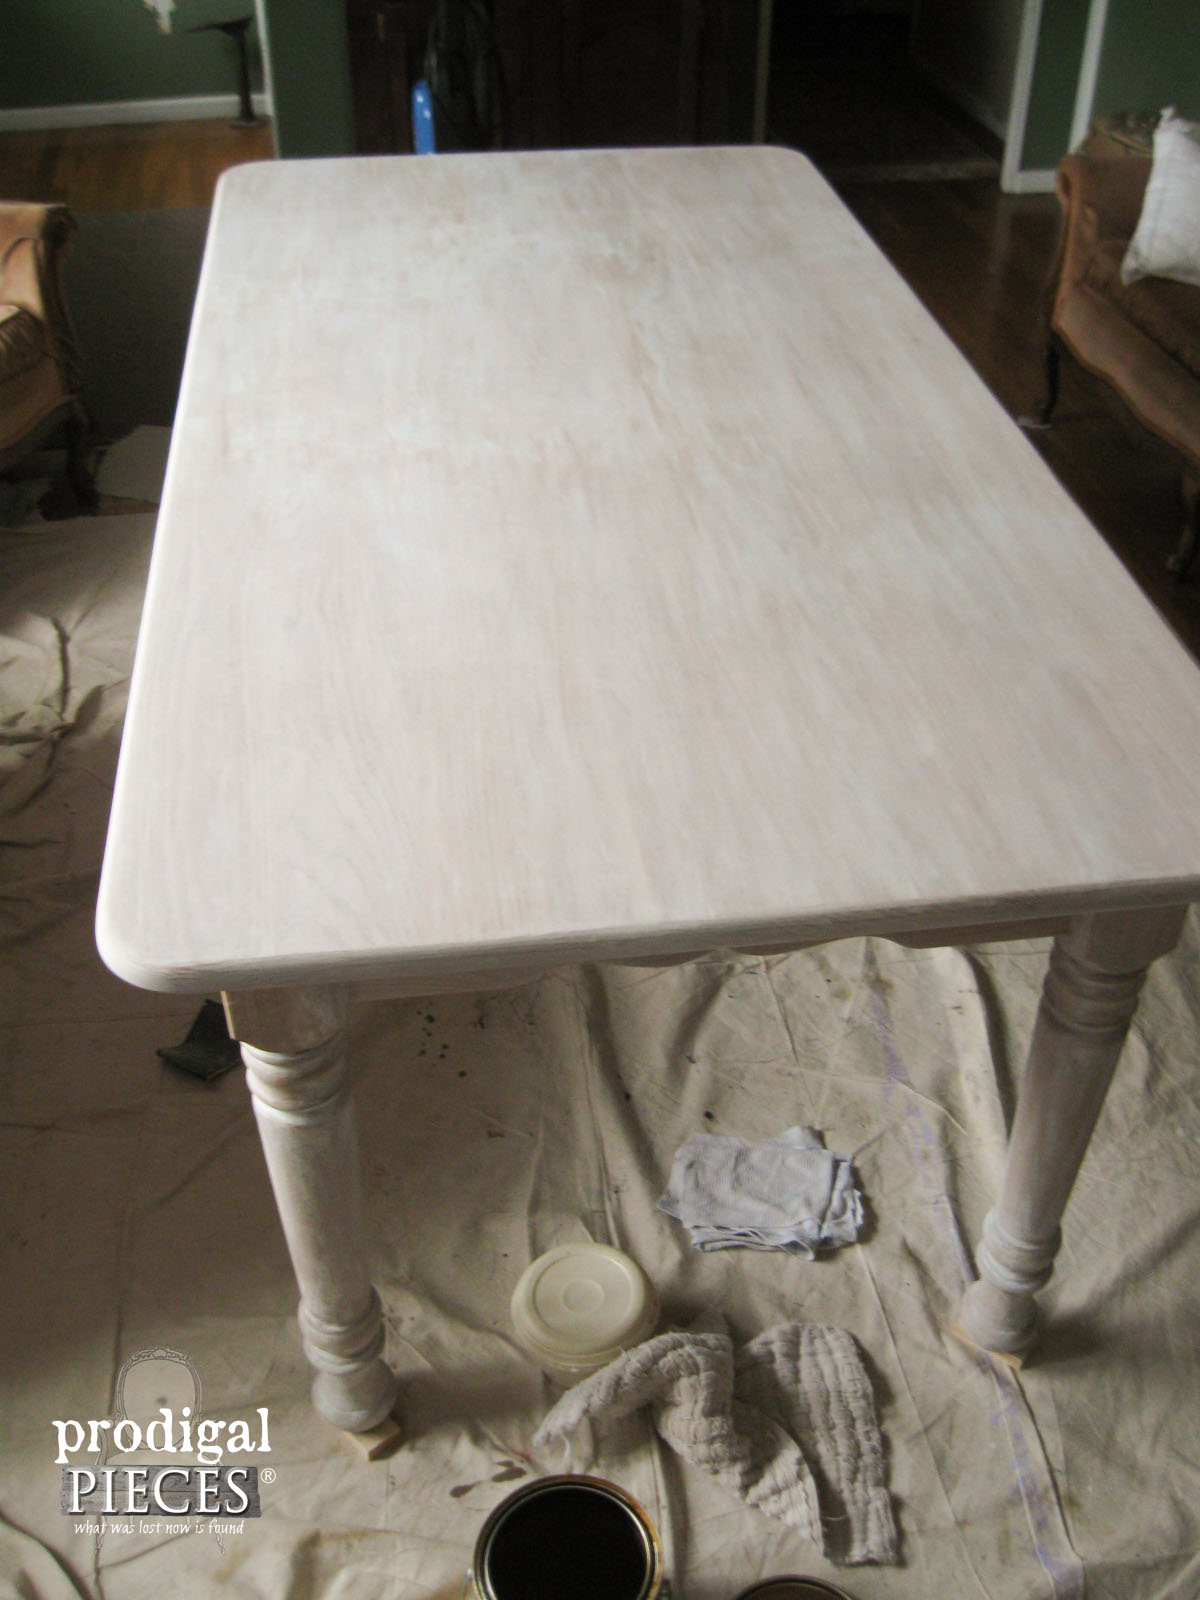 White washed furniture whitewash Furniture Doityourself Whitewashed Farmhouse Table Before Waterlox Topcoat Prodigal Pieces Wwwprodigalpiecescom Prodigal Pieces Whitewashed or Limewashed Wood Prodigal Pieces